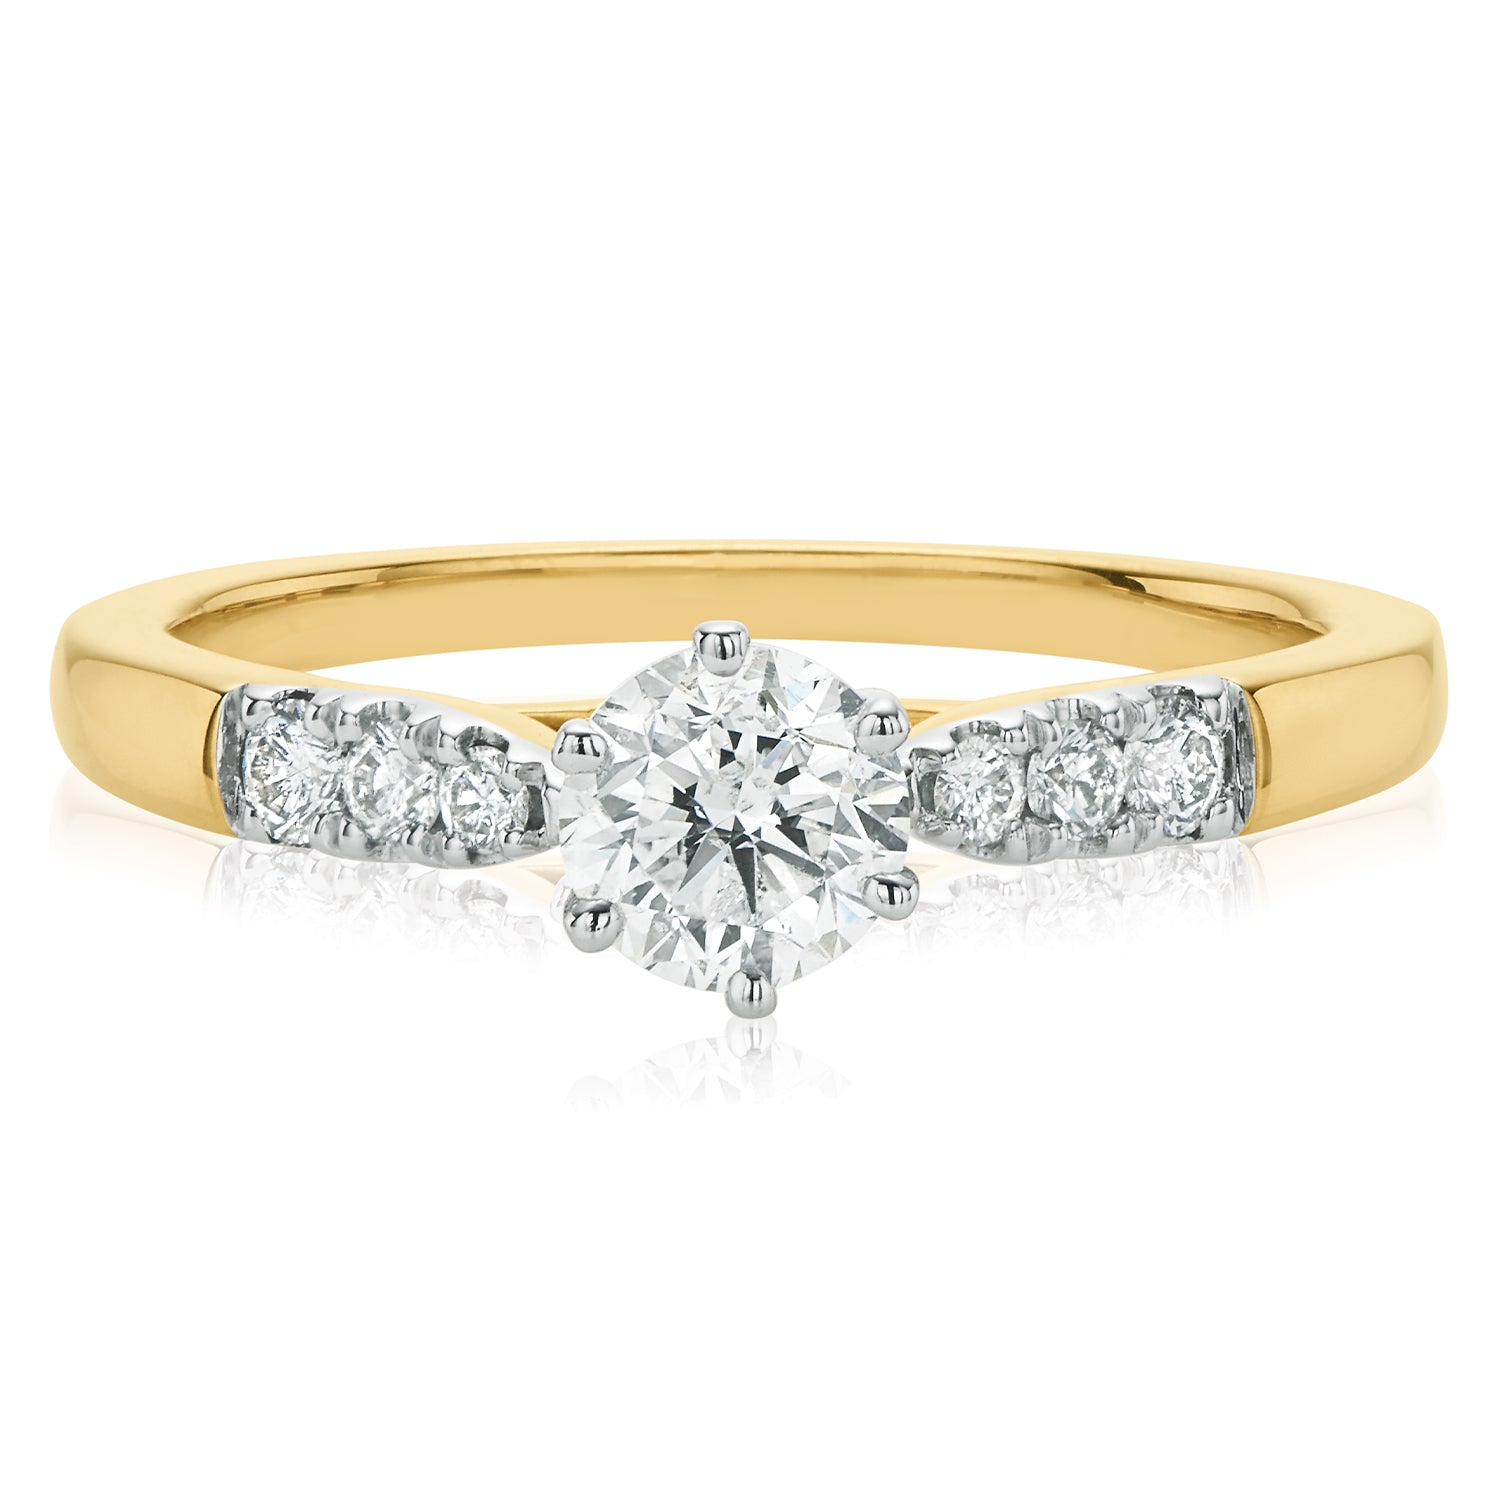 18ct Yellow Gold Round Brilliant Cut with 3/4 CARAT tw of Diamonds